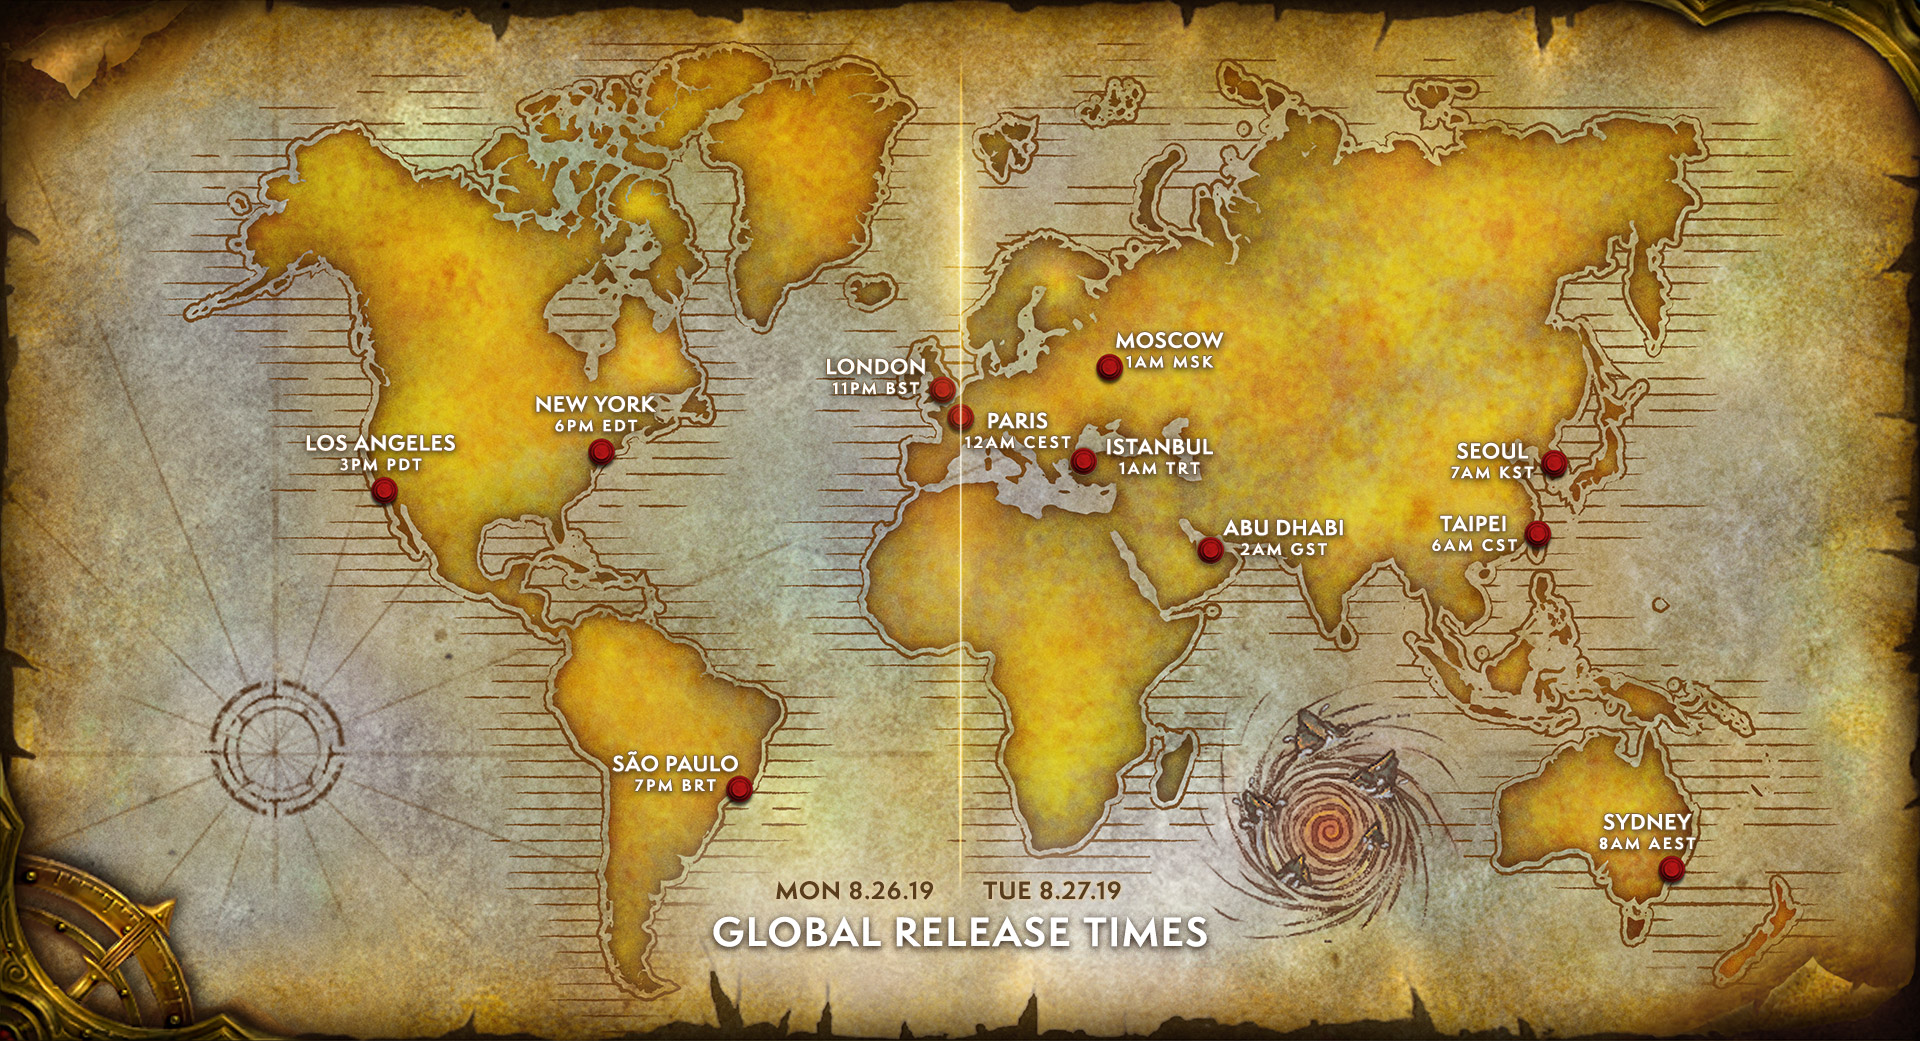 WoW Classic Release Map